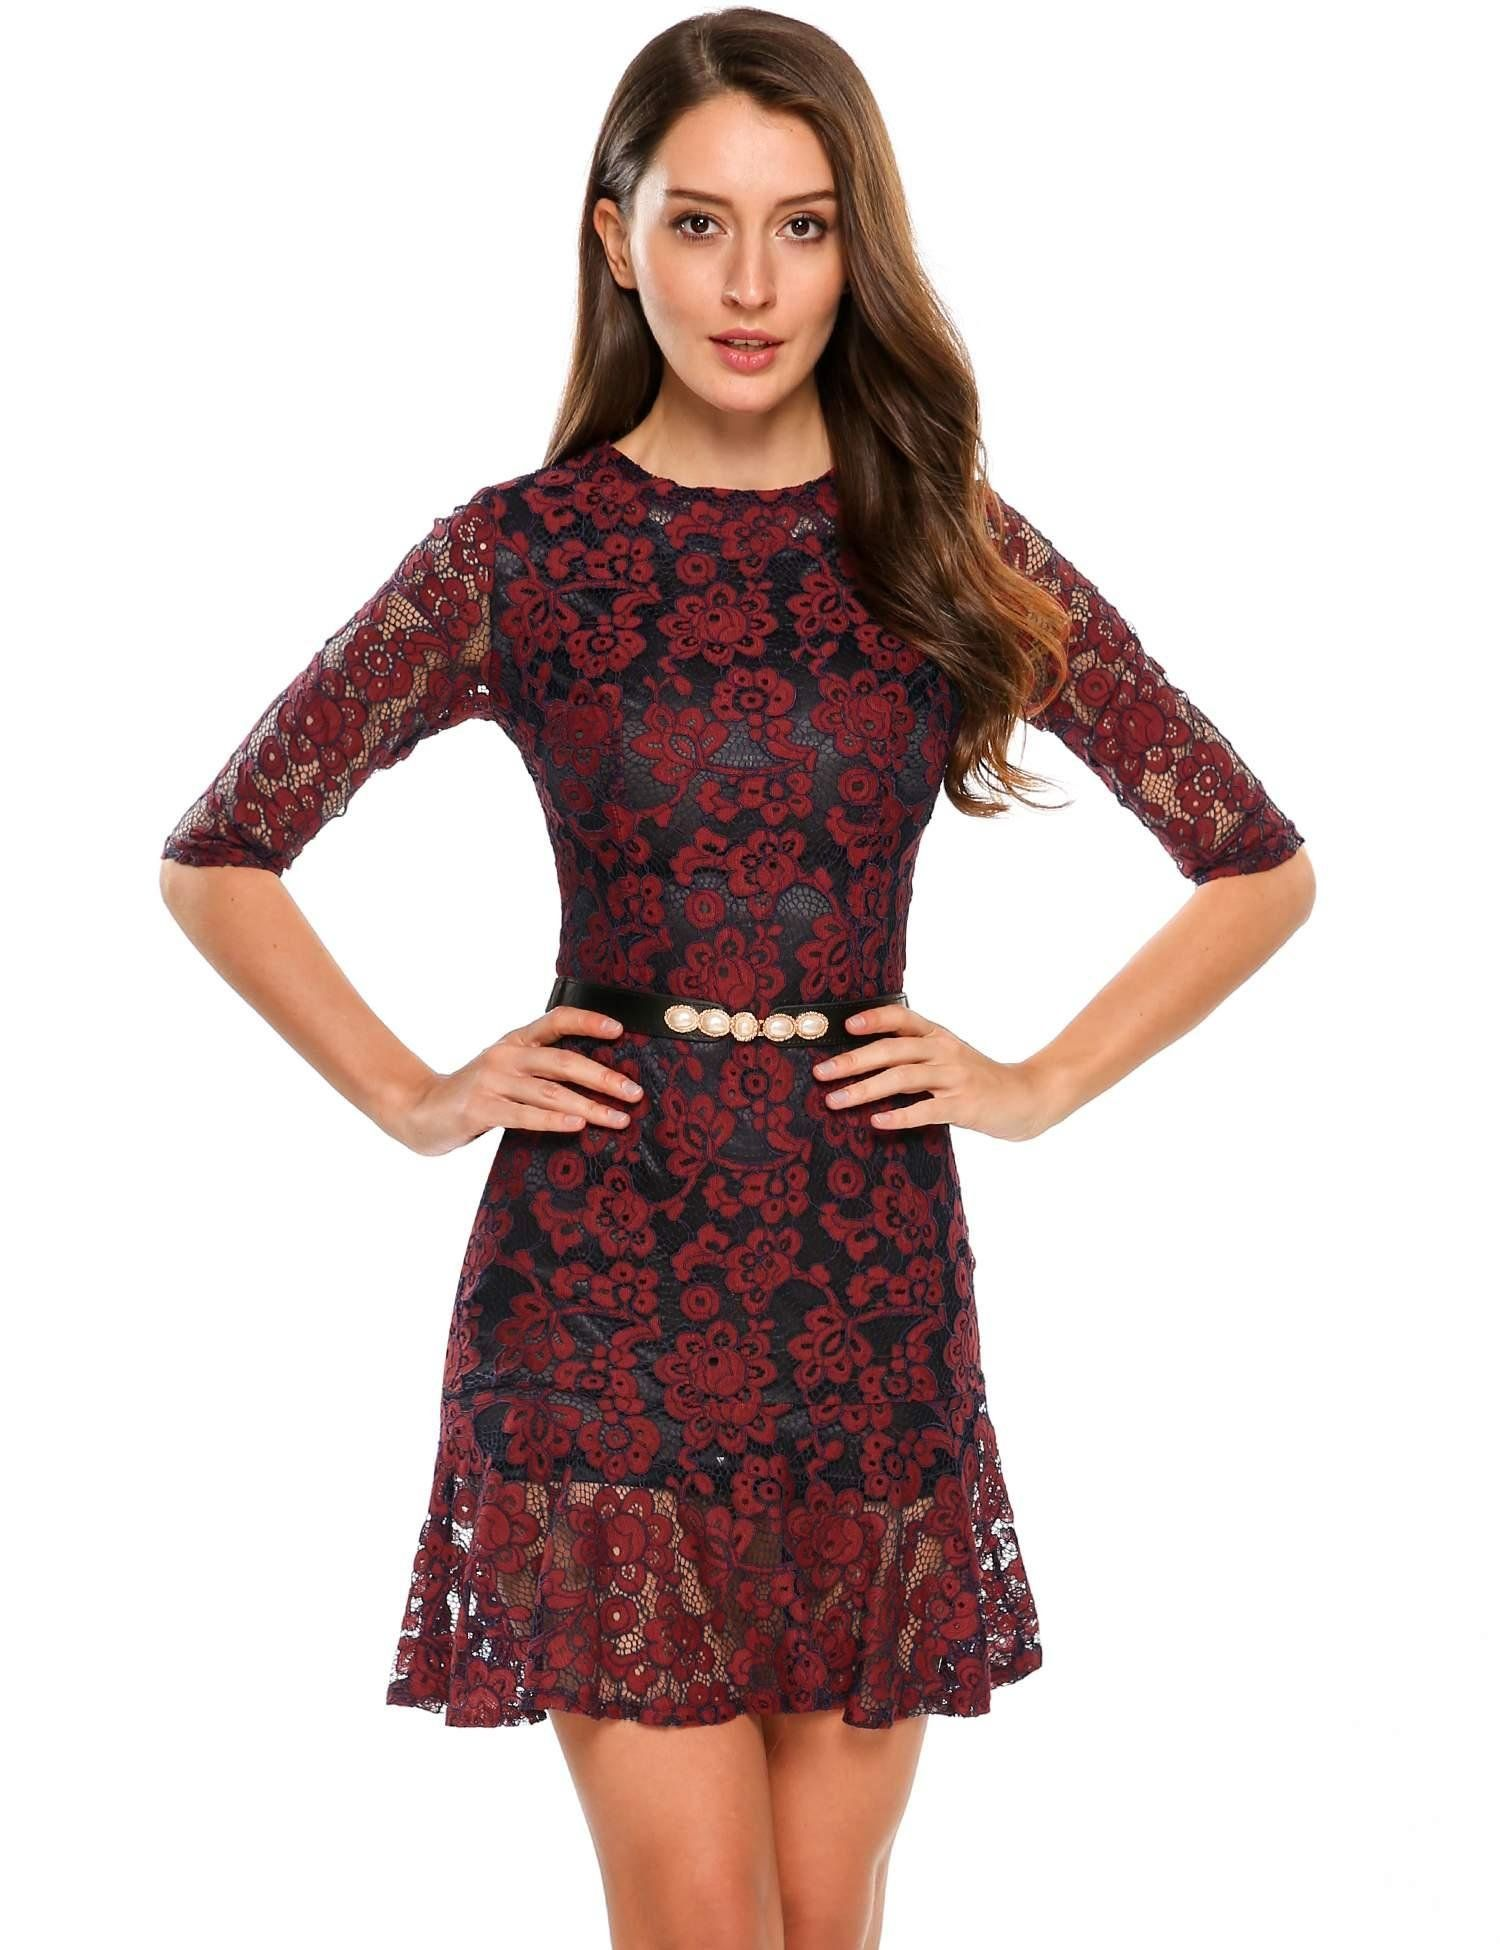 8d7ea778d6ac8 ANGVNS Womens Vintage Floral Lace 2 3 Sleeve Cocktail Evening Party Dress    Check out this great product. (This is an affiliate link)